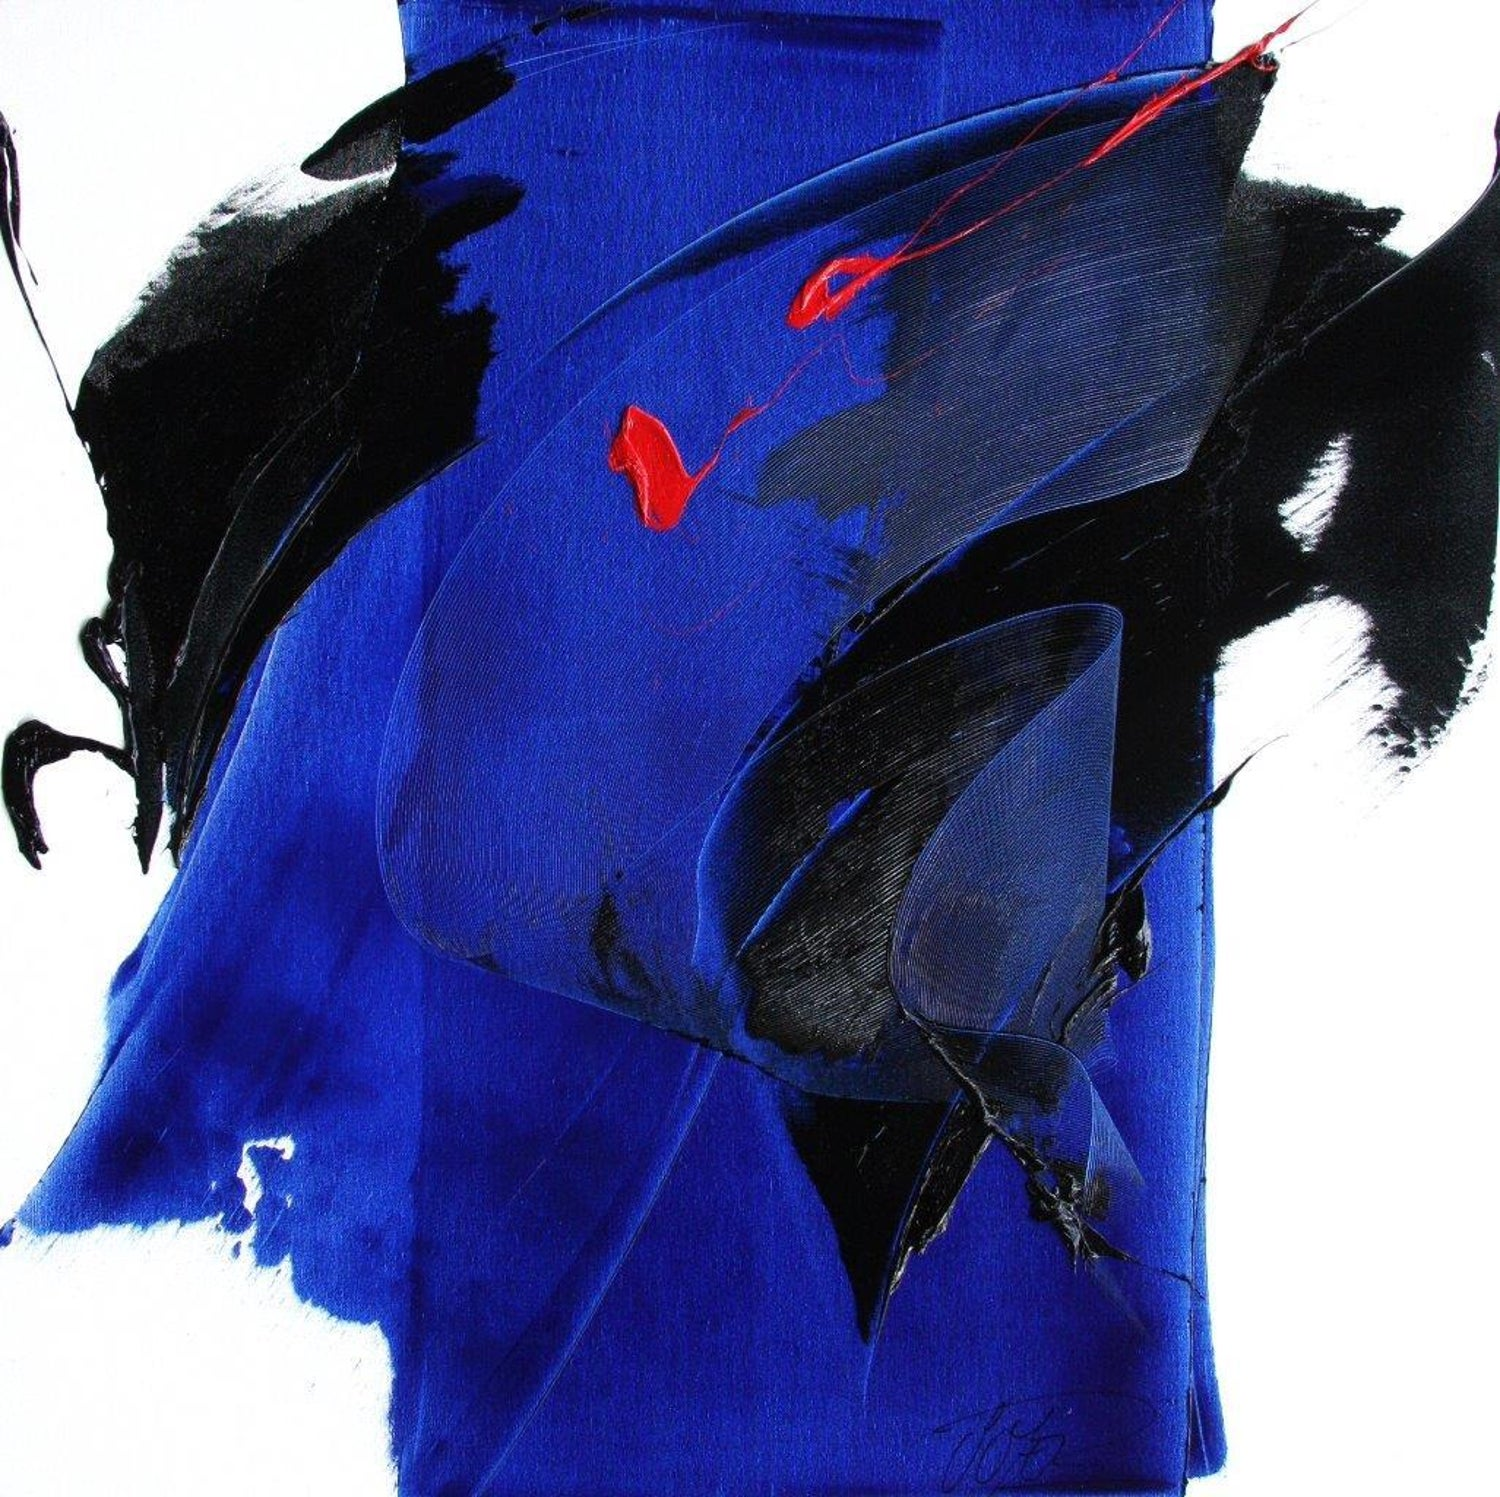 Dark And Blue With Red Touches On White Background Abstract Oil Painting